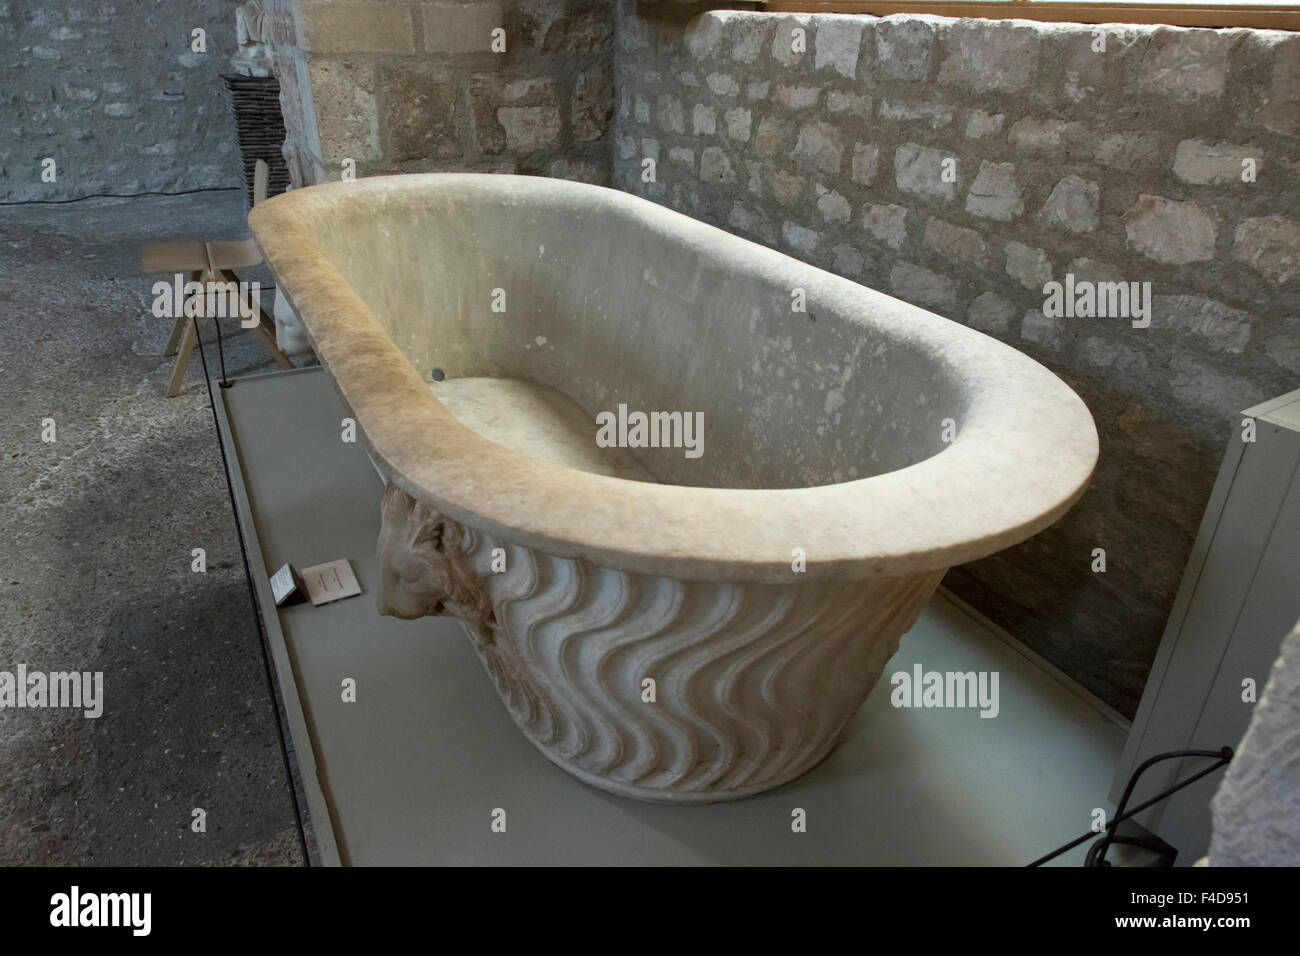 Europe, France, Paris. A tub in the Roman Bath vault of the Cluny ...